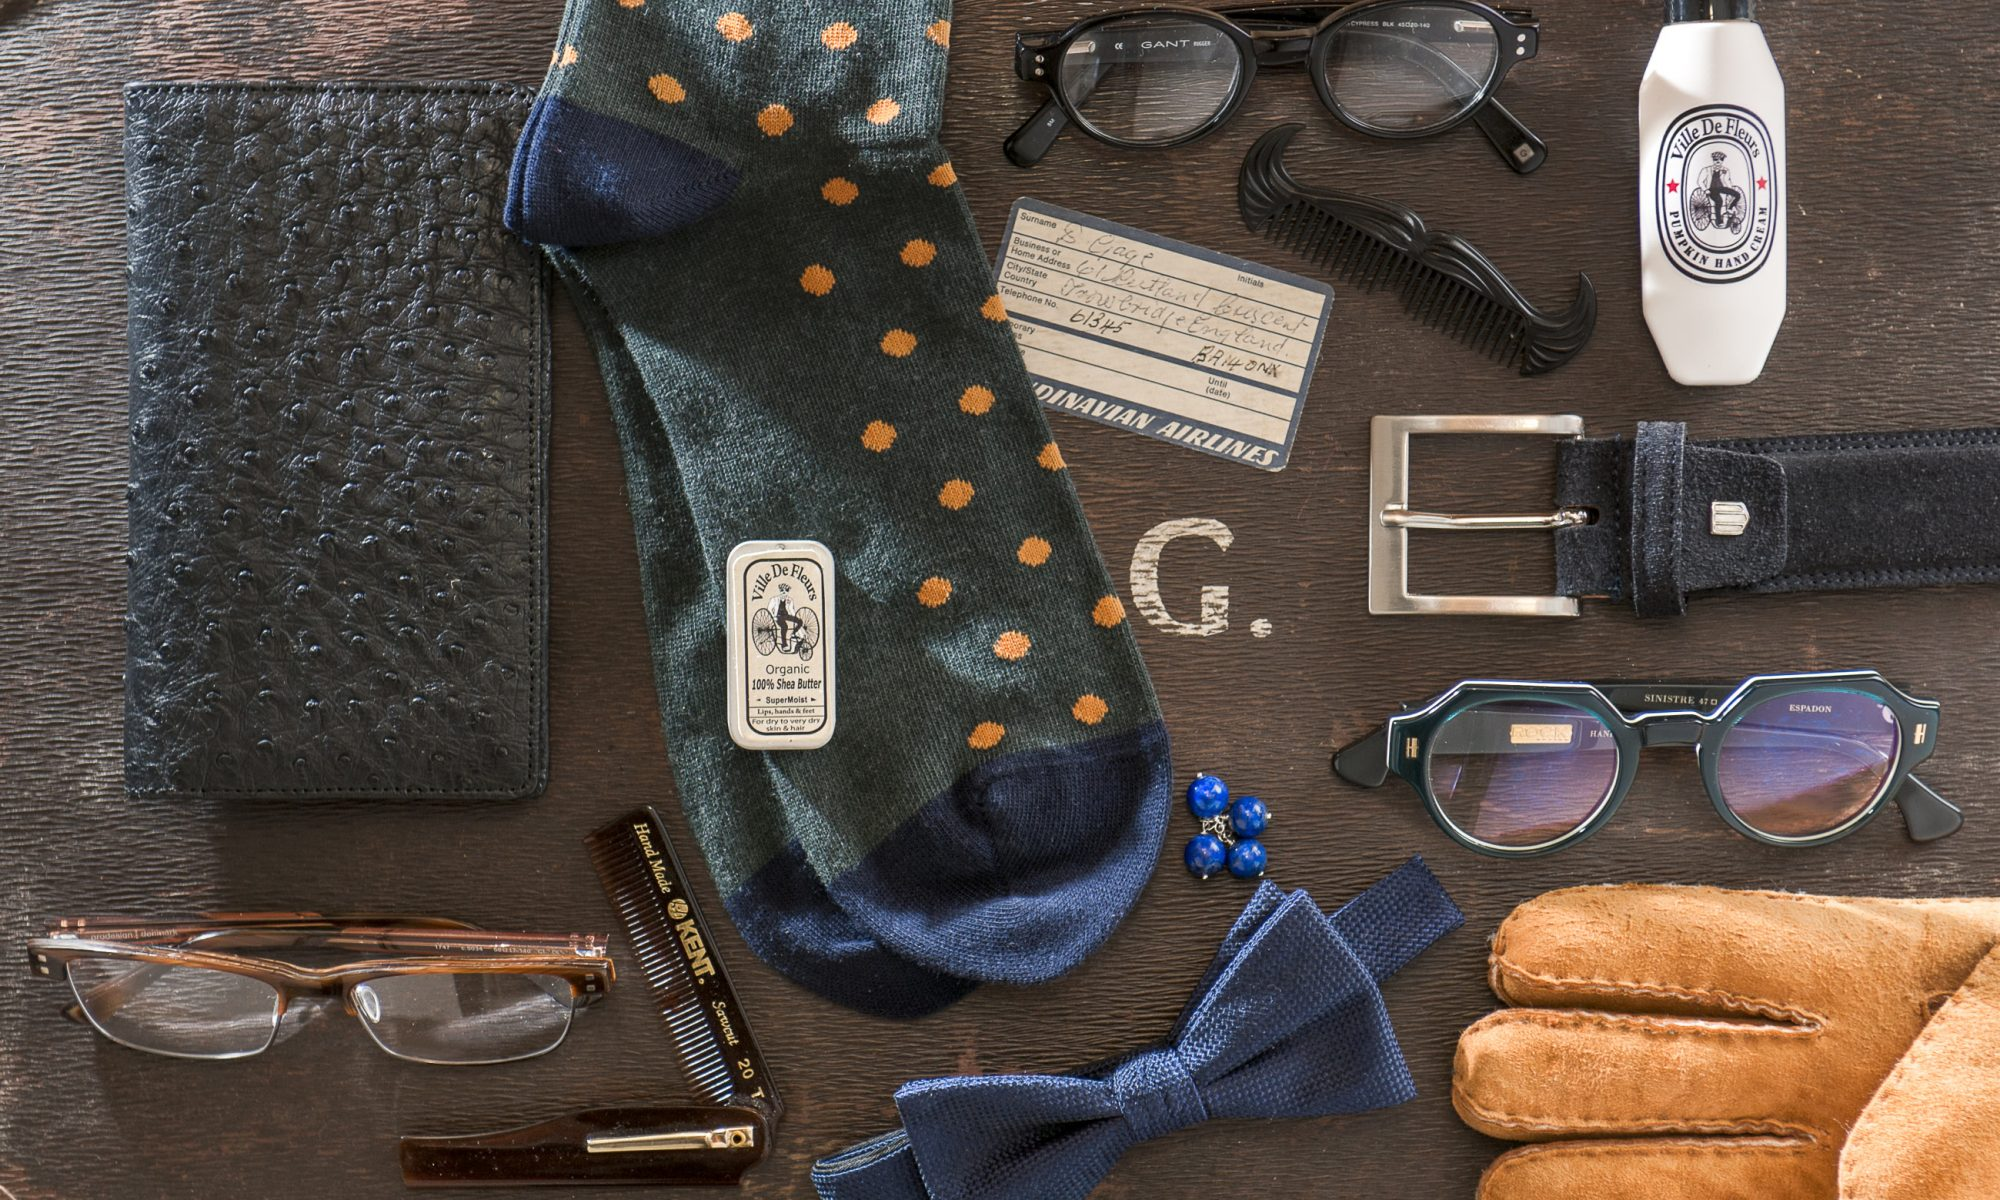 Black leather wallet, £135, Ostrich 2 Love www.wealdenfairs.com/ostrich2love; Gant dot socks, £13, Jeremy Hobbs Fine Menswear, Surrey 01932 865700 www.jeremyhobbs.co.uk; Pro Design brown frames, £175, Gant black frames, £120, Linda Pope Opticians, Hawkhurst 01580 753744 www.lindapopeoptician.co.uk; Kent men's folding pocket comb, £8.50, organic shea butter, £4.99, The Original Cowboy moustache comb, £9.99, Golden Pumpkin men's hand cream, £8.99, Ville De Fleurs www.wealdenfairs.com/villedefleurs; navy silk bowtie, £15, Profuoma suede navy belt, £39, County Clothes, Tenterden 01580 765159 www.countyclothesmenswear.co.uk; Lapis cufflinks, £25, Victorious Bee www.wealdenfairs.com/victoriousbee; men's merino sheepskin gloves, £39.99, Snugrugs www.wealdenfairs.com/snugrugs; Sinistre frames in 'Espadon' 2016, £299, RockOptika www.wealdenfairs.com/rockoptika